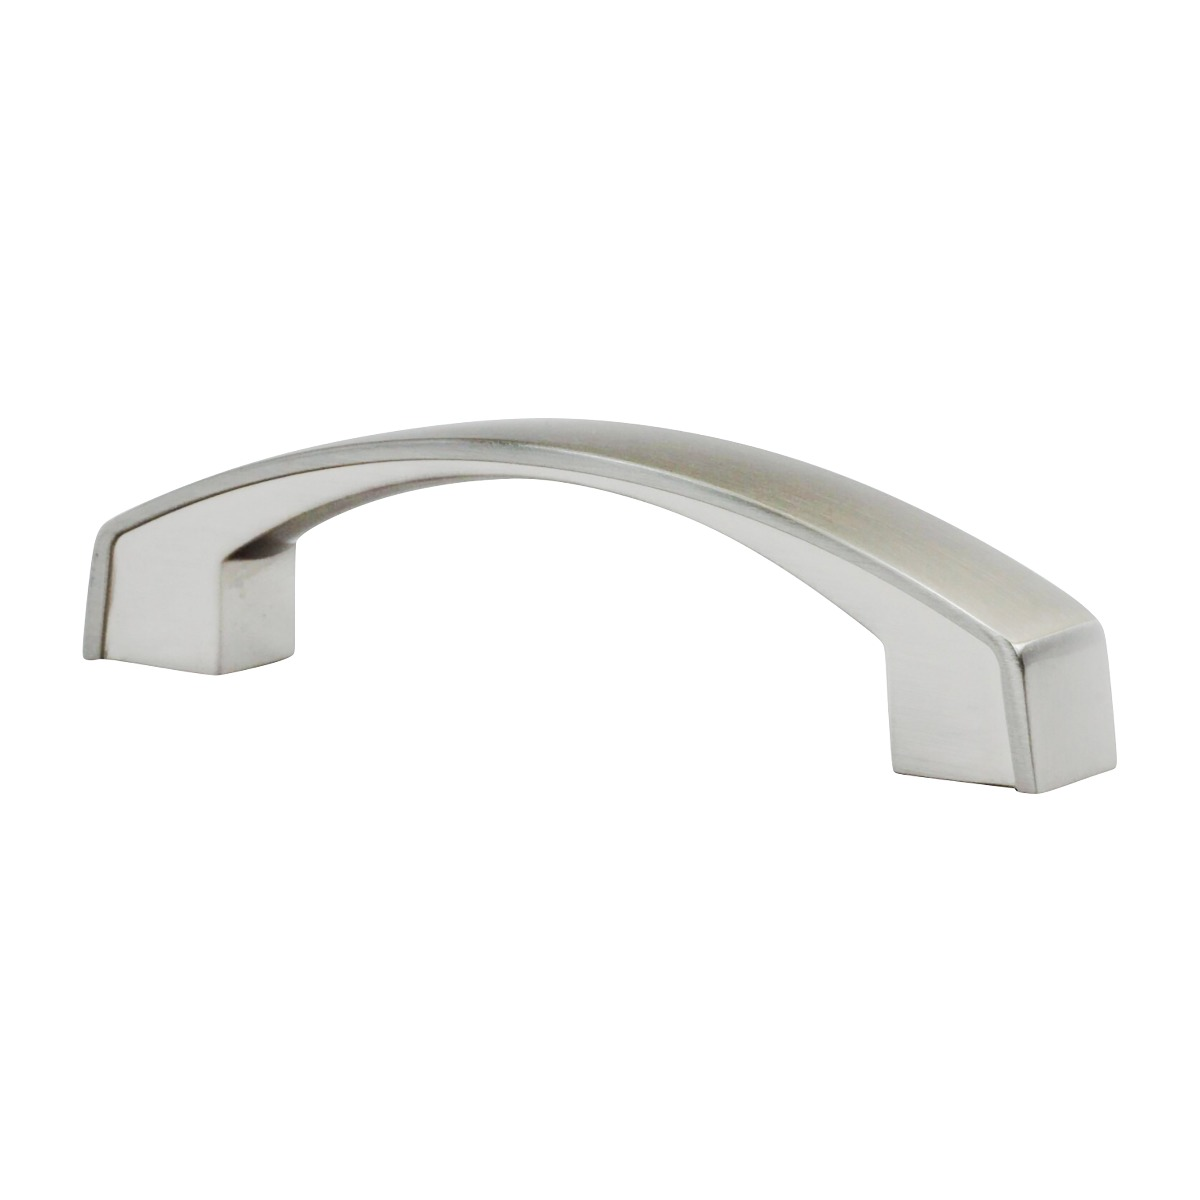 Picture of: Transitional Style 3 3 4 96mm Center To Center Overall Length 5 Brushed Nickel Cabinet Hardware Pull Handle